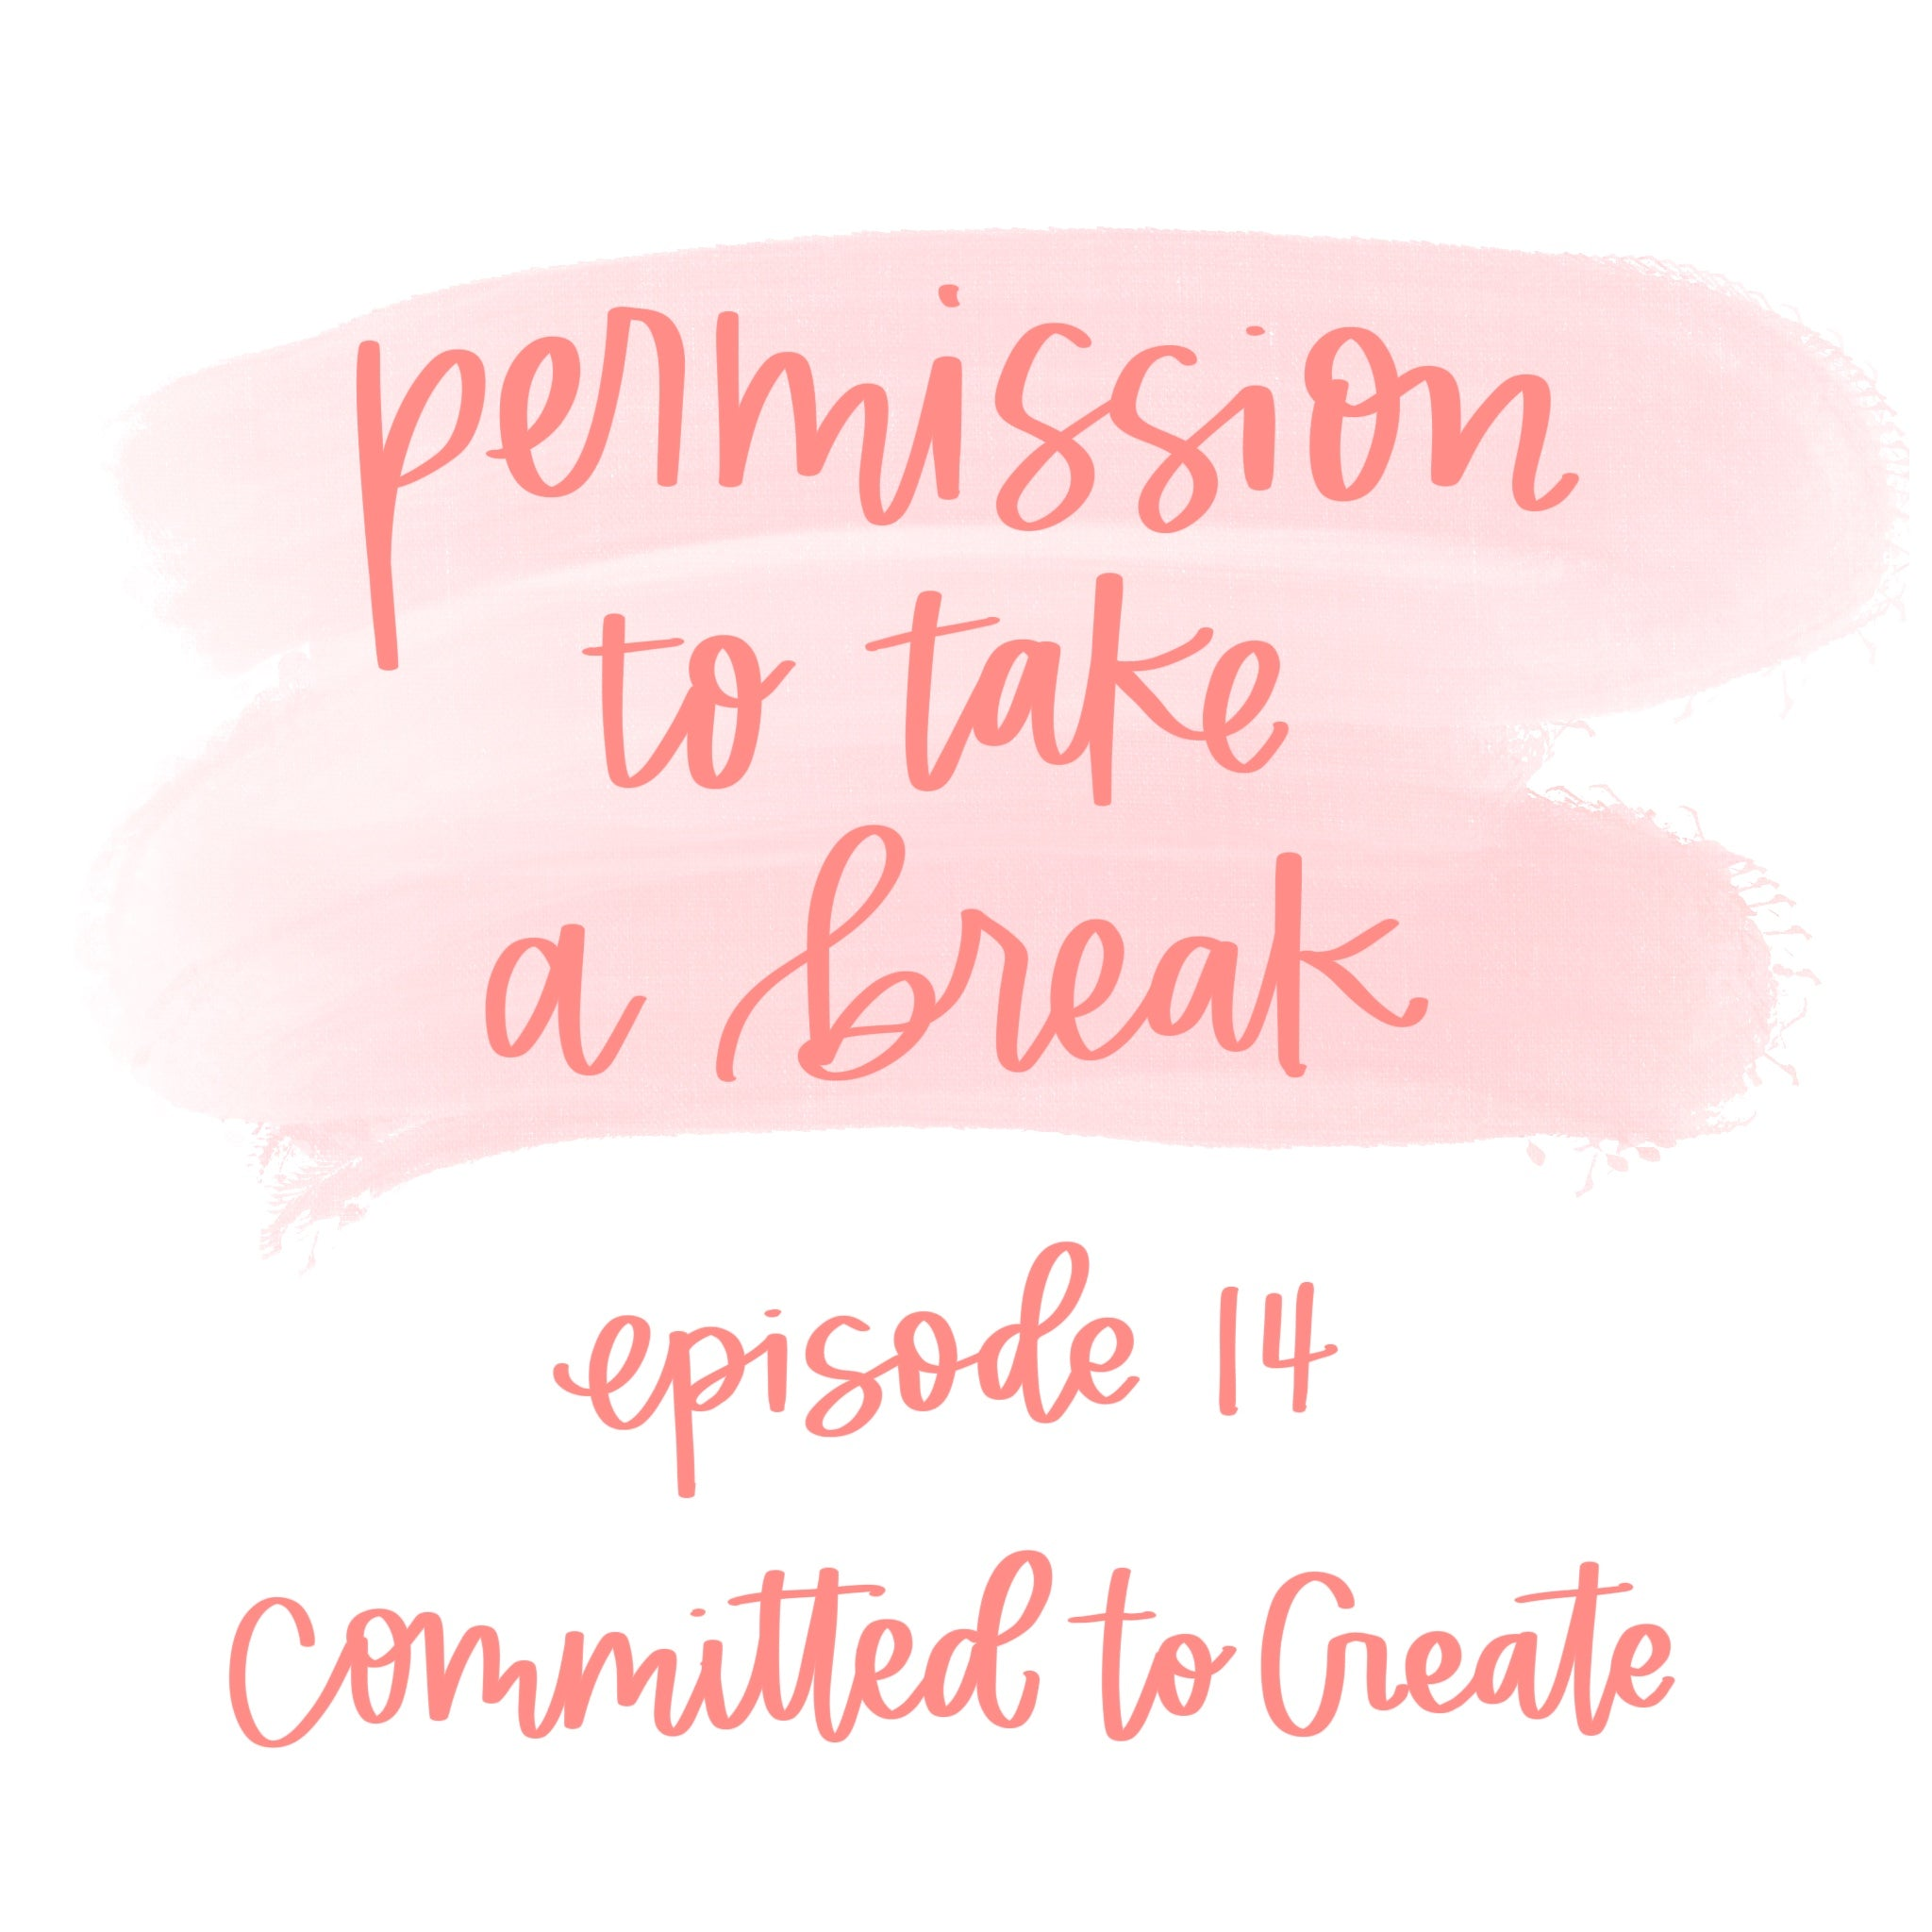 Episode 14 Permission to Take a Break